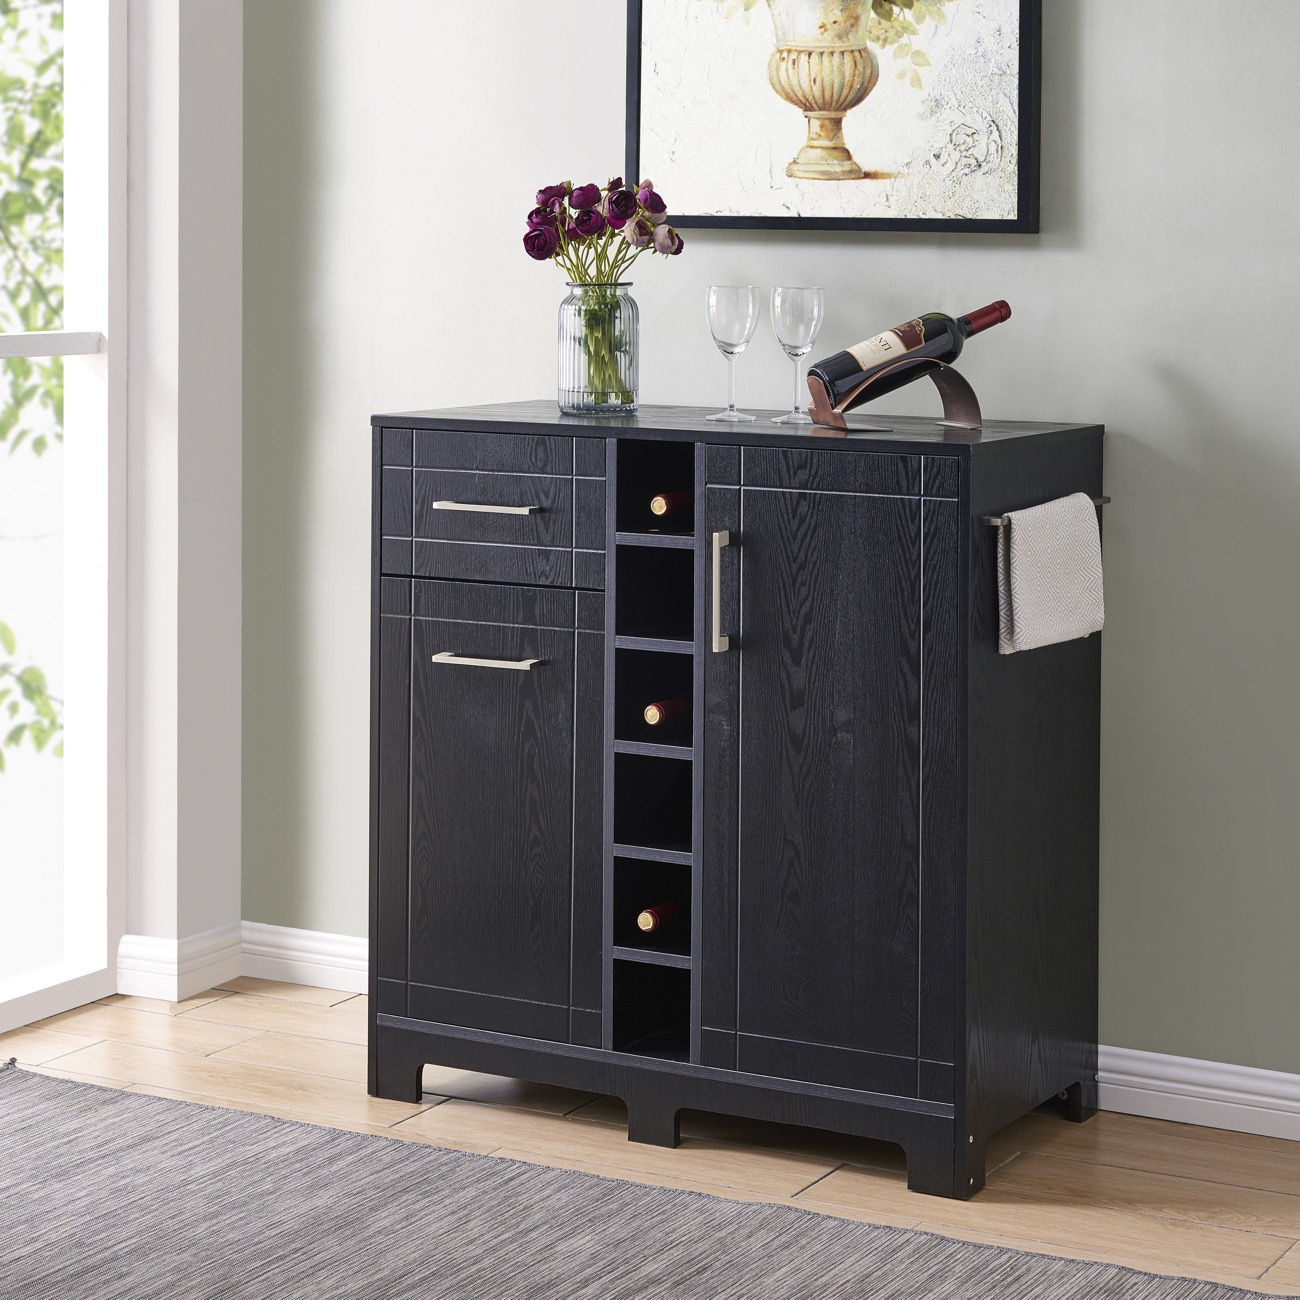 Details About Modern Buffet Server Sideboard Bar Cabinet With Wine Storage And Racks, Black For Buffets With Bottle And Glass Storage (Gallery 19 of 30)